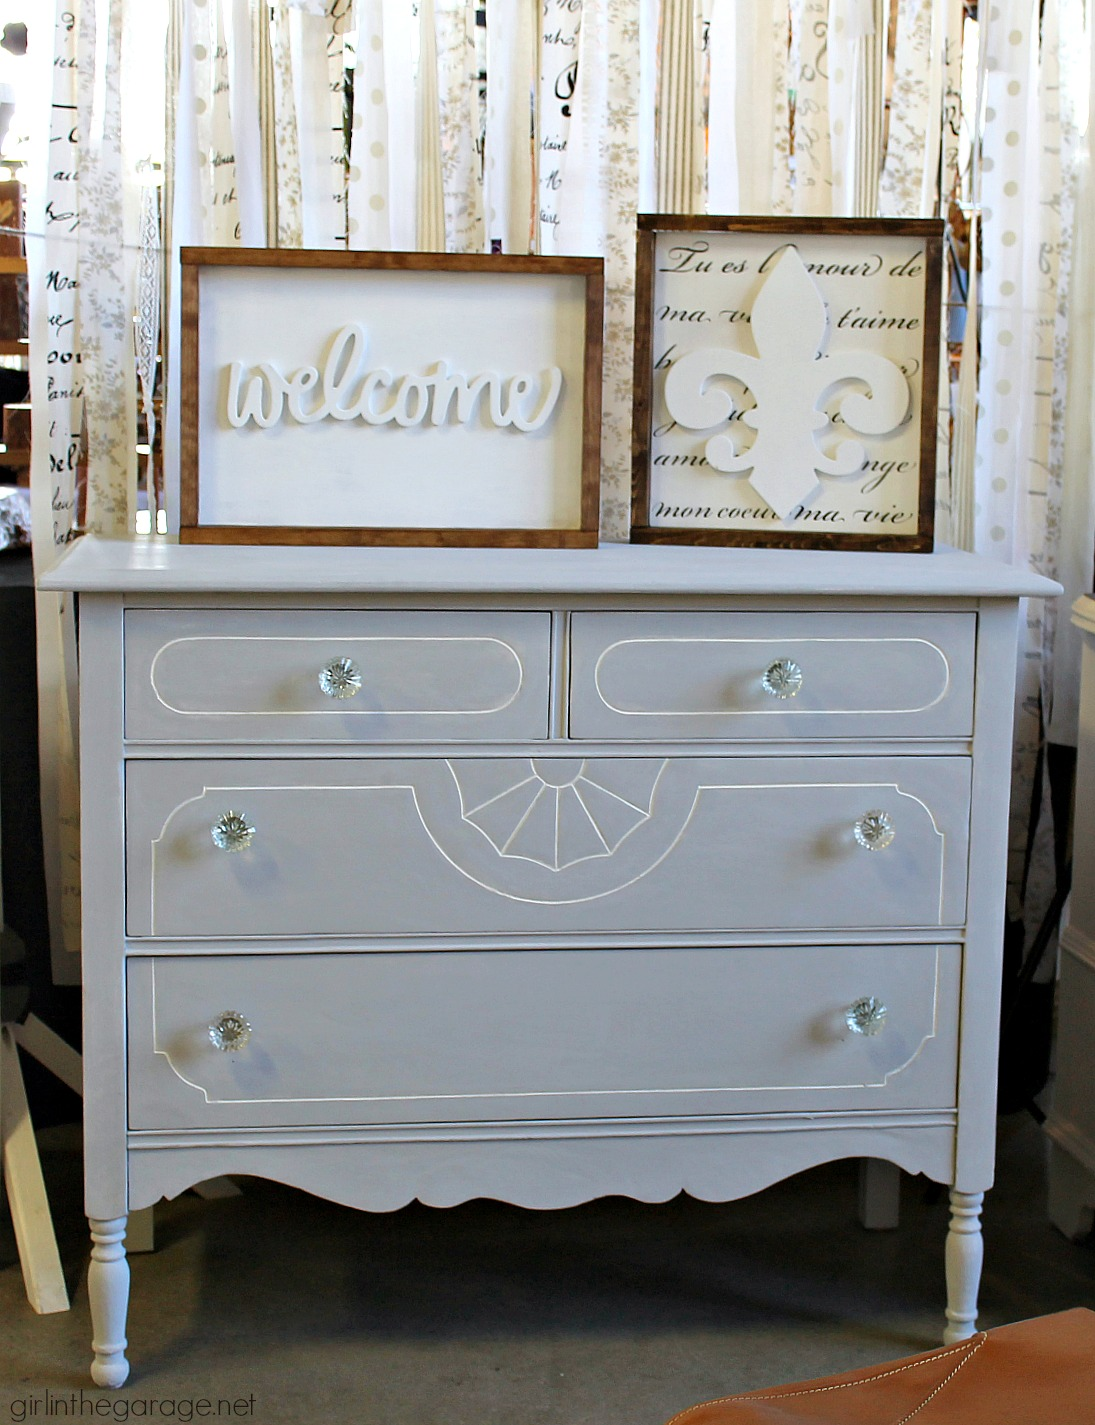 IMG_7552-chalk-paint-antique-vanity-makeover - IMG_7552-chalk-paint-antique-vanity-makeover Girl In The Garage®